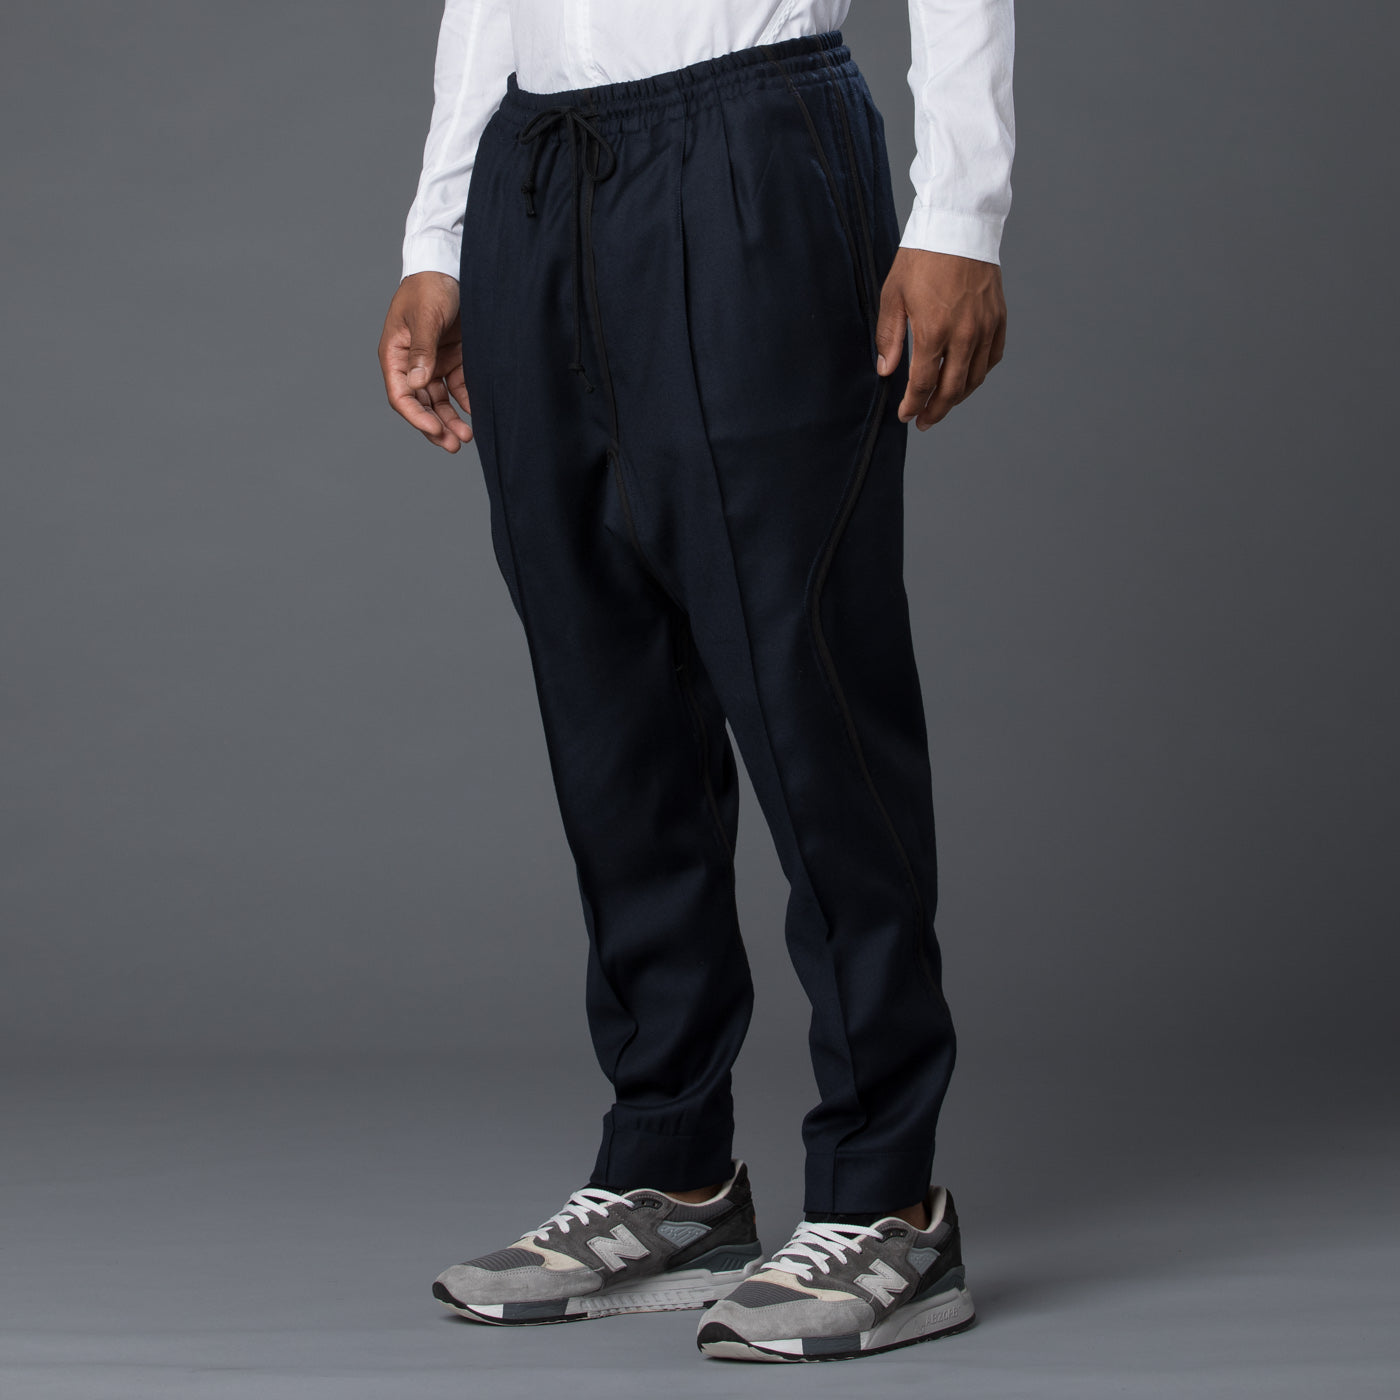 Abasi Rosborough Arc Ankara Pant in Navy